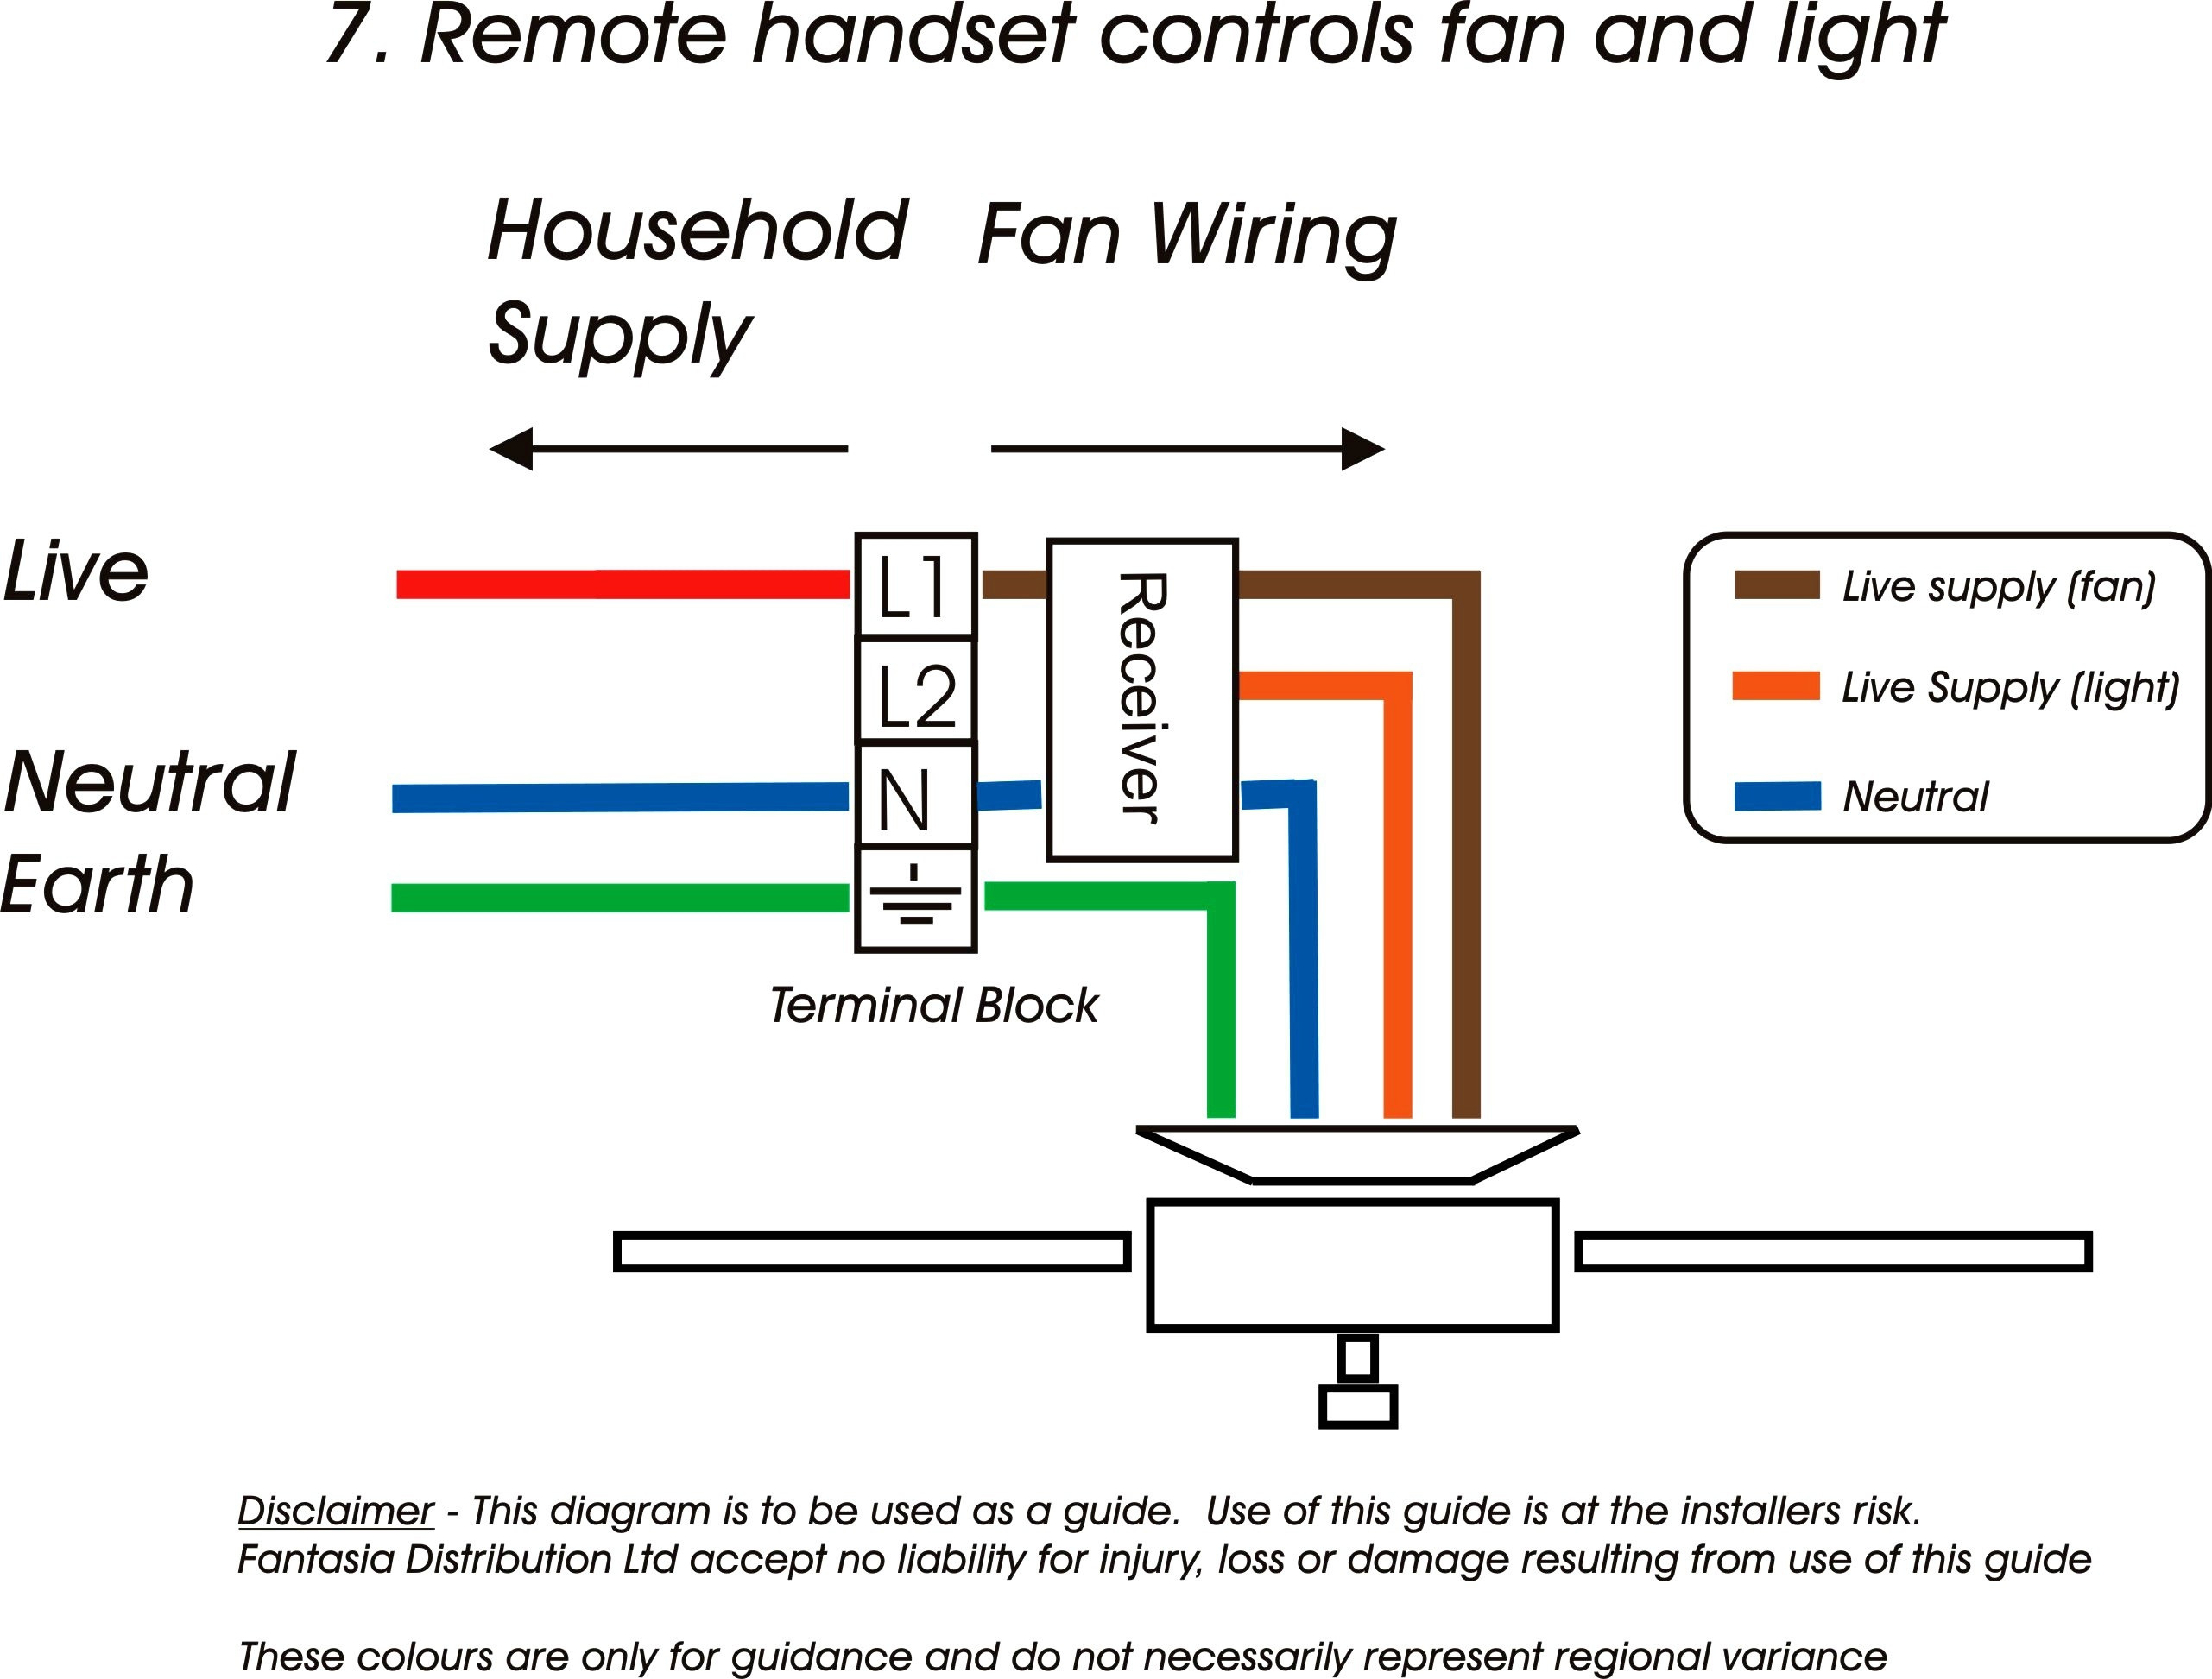 Wiring Diagram For Wireless Ceiling Fan on parts for ceiling fan, dimensions for ceiling fan, ac-552 ceiling fan, remote control for ceiling fan, mounting diagram for ceiling fan, capacitor for ceiling fan, switch for ceiling fan, lighting for ceiling fan, electrical wiring ceiling fan, wire for ceiling fan, light switch wiring ceiling fan, electrical diagram for ceiling fan, heater for ceiling fan, sensor for ceiling fan, circuit for ceiling fan, cover for ceiling fan, relay for ceiling fan, timer for ceiling fan, transformer for ceiling fan, wiring ceiling fan with light,